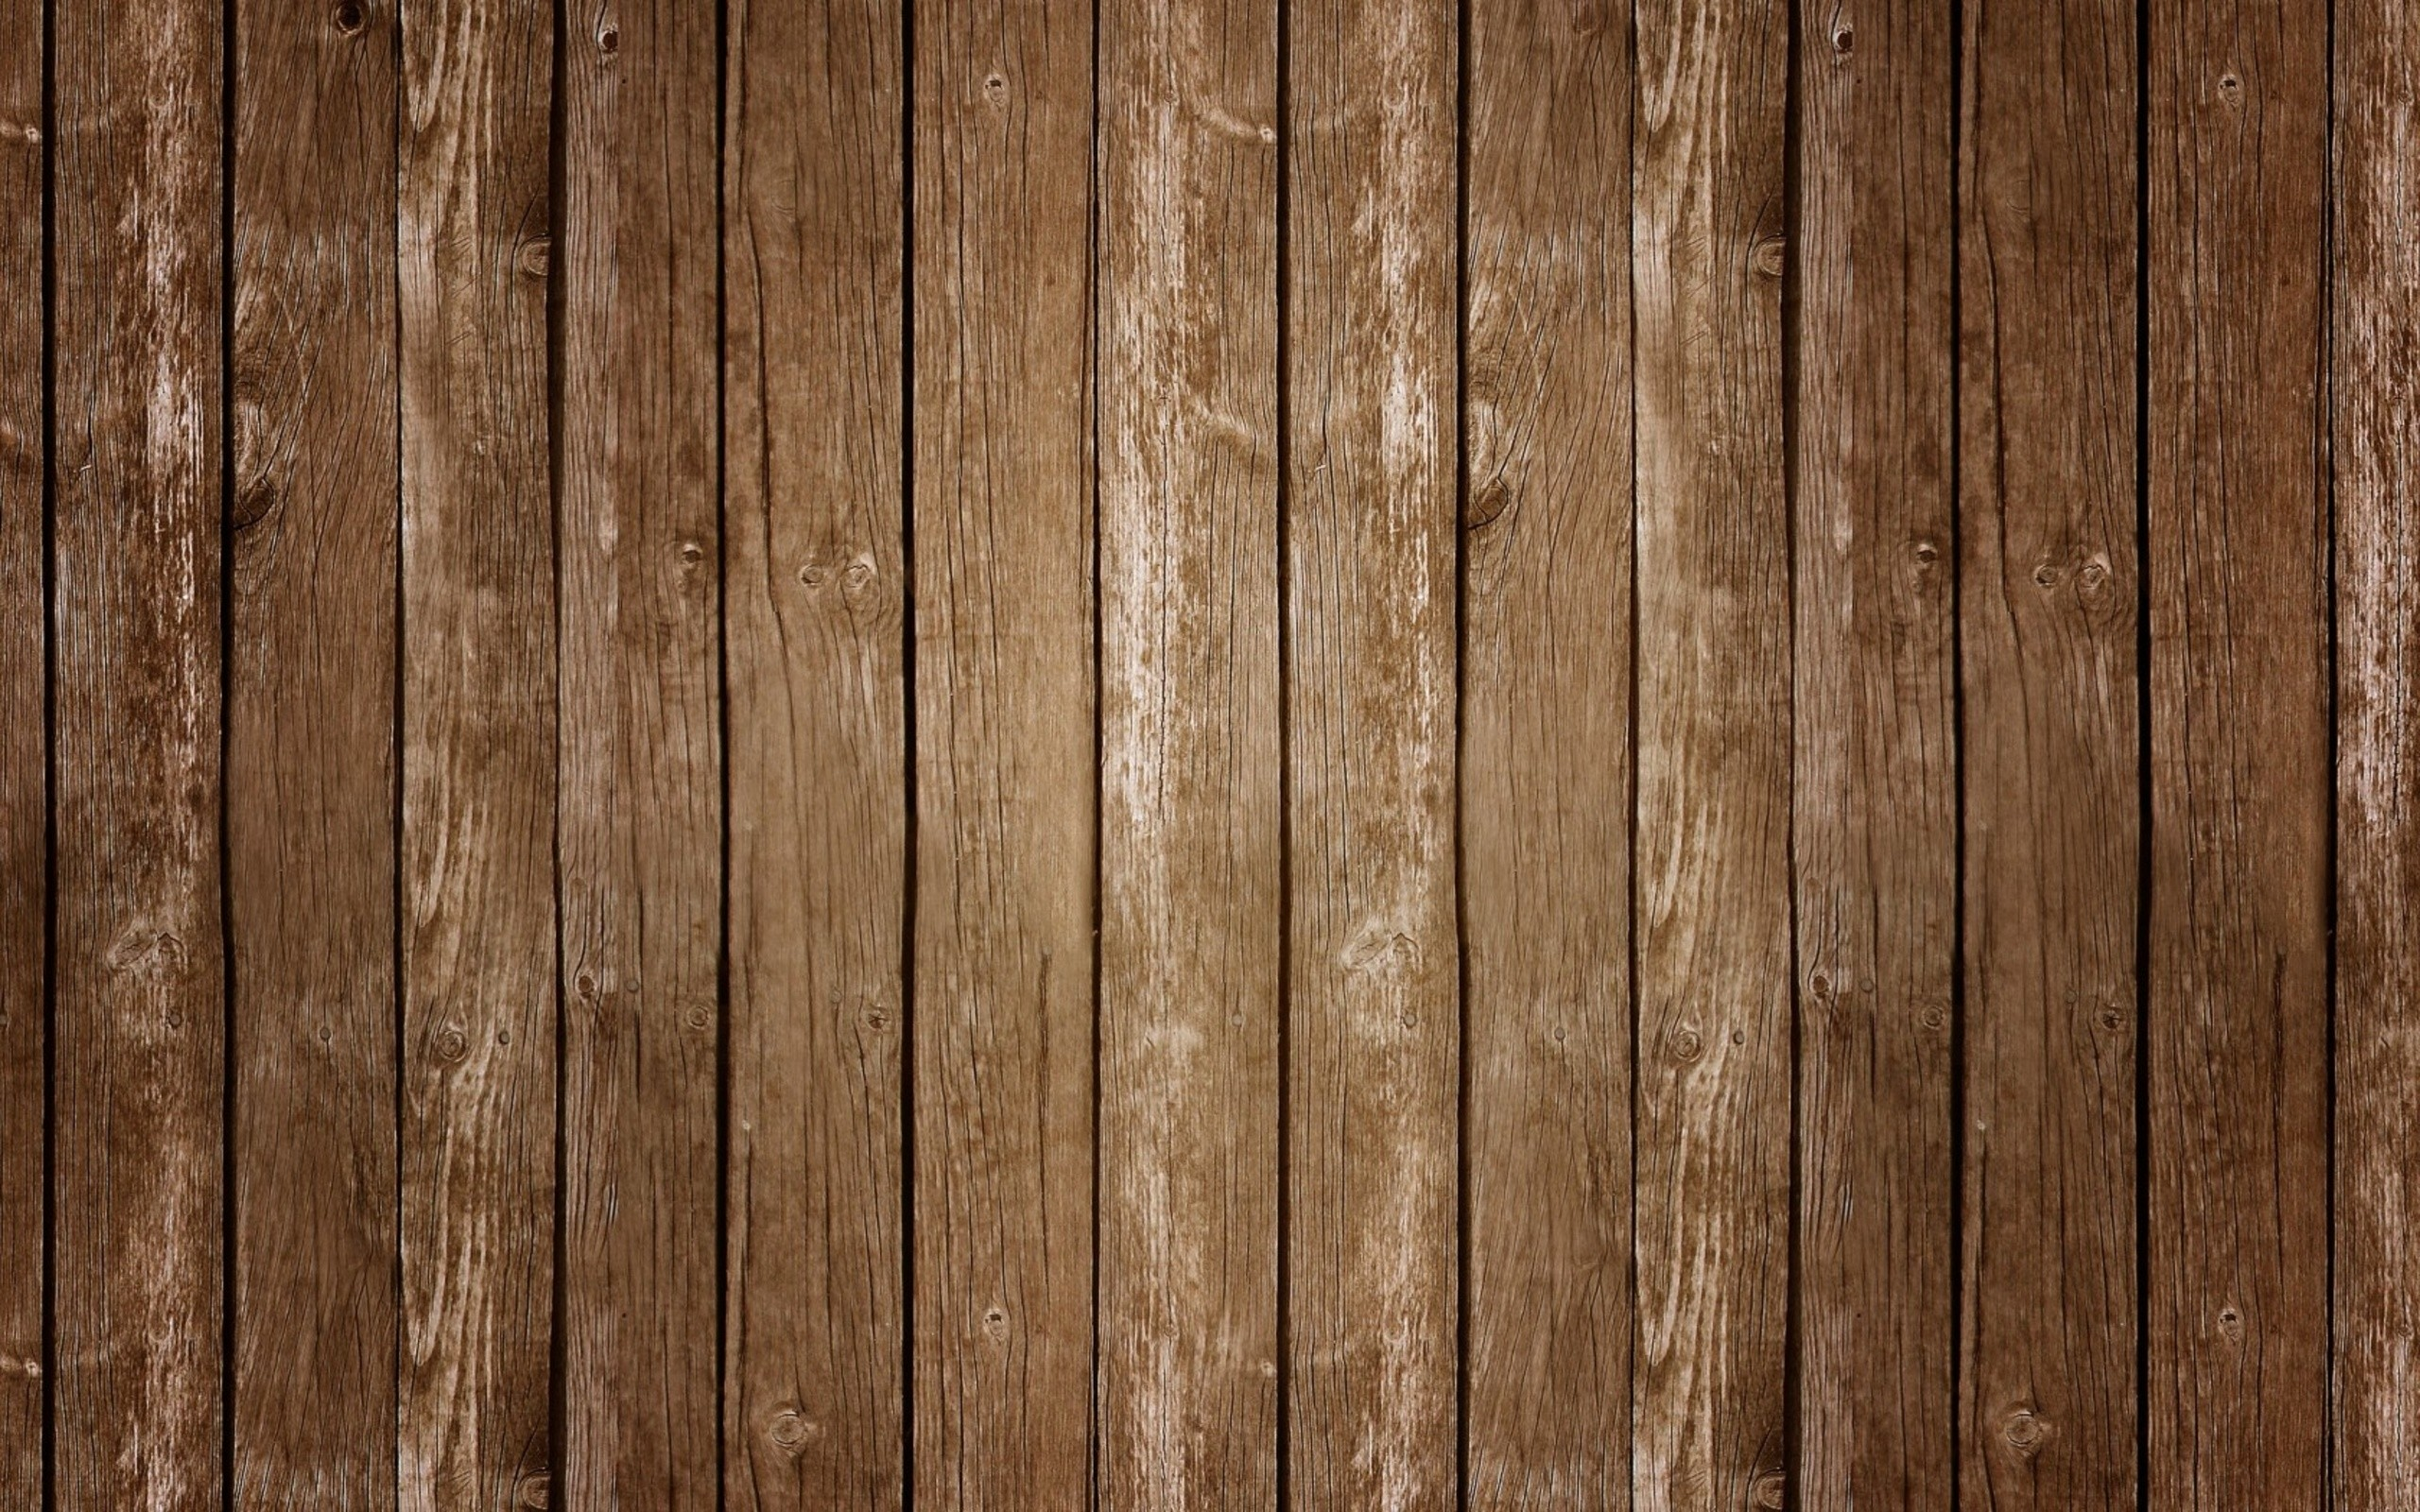 2560x1600 ... Old Weathered Rustic Rustic Barn Wood Background And Wood Computer  Wallpapers Desktop Backgrounds ...